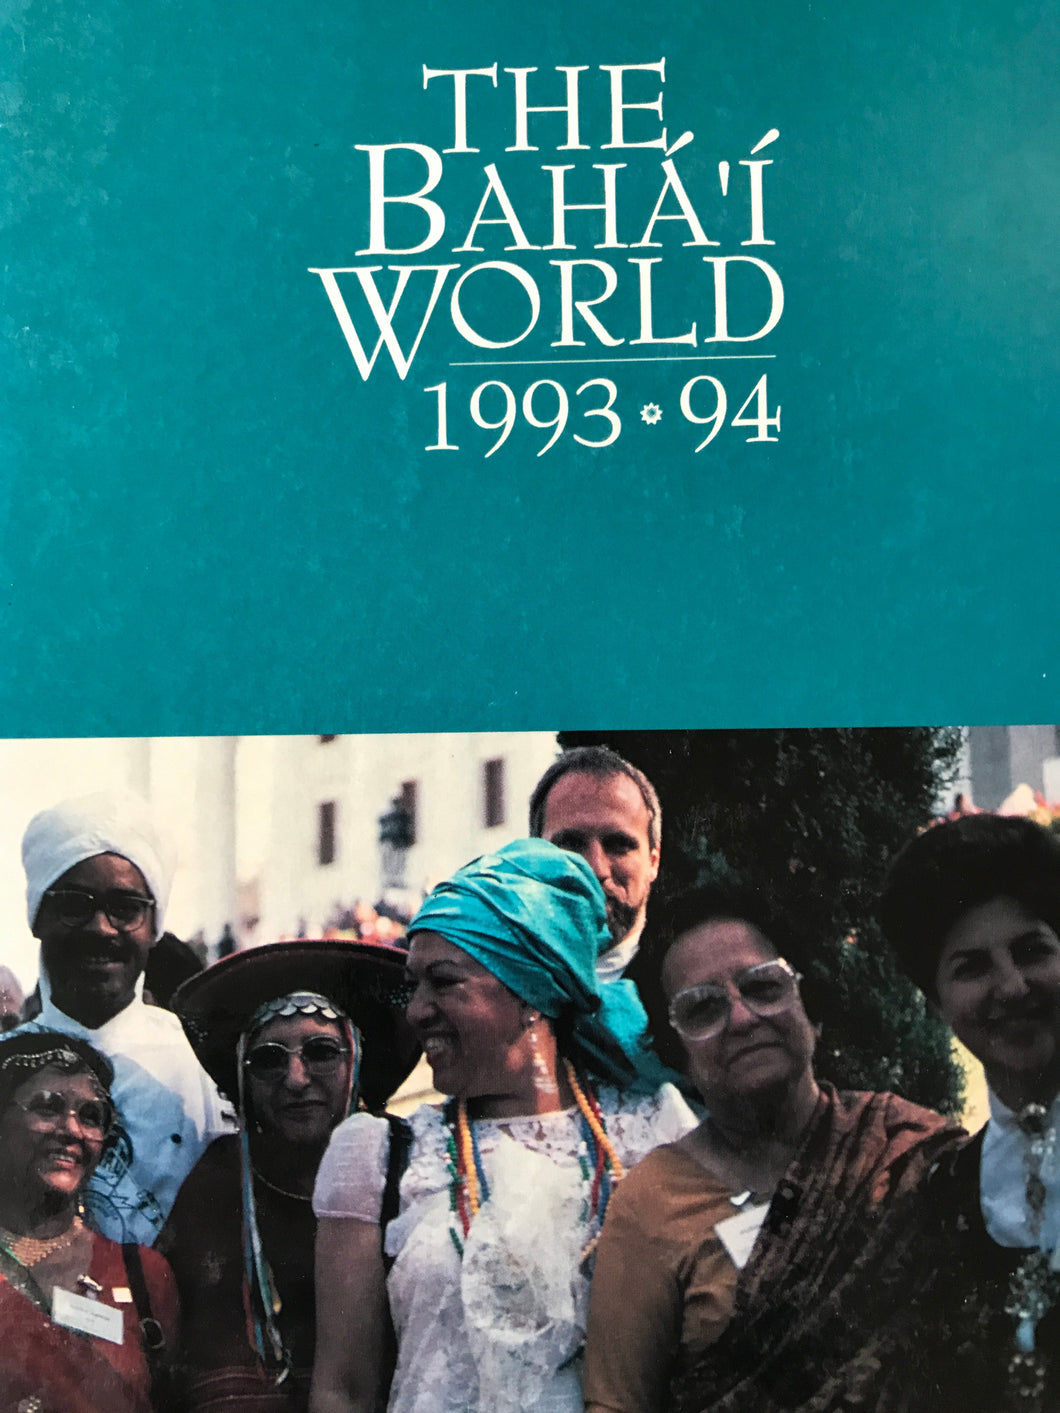 Bahá'í World, The 1993-1994